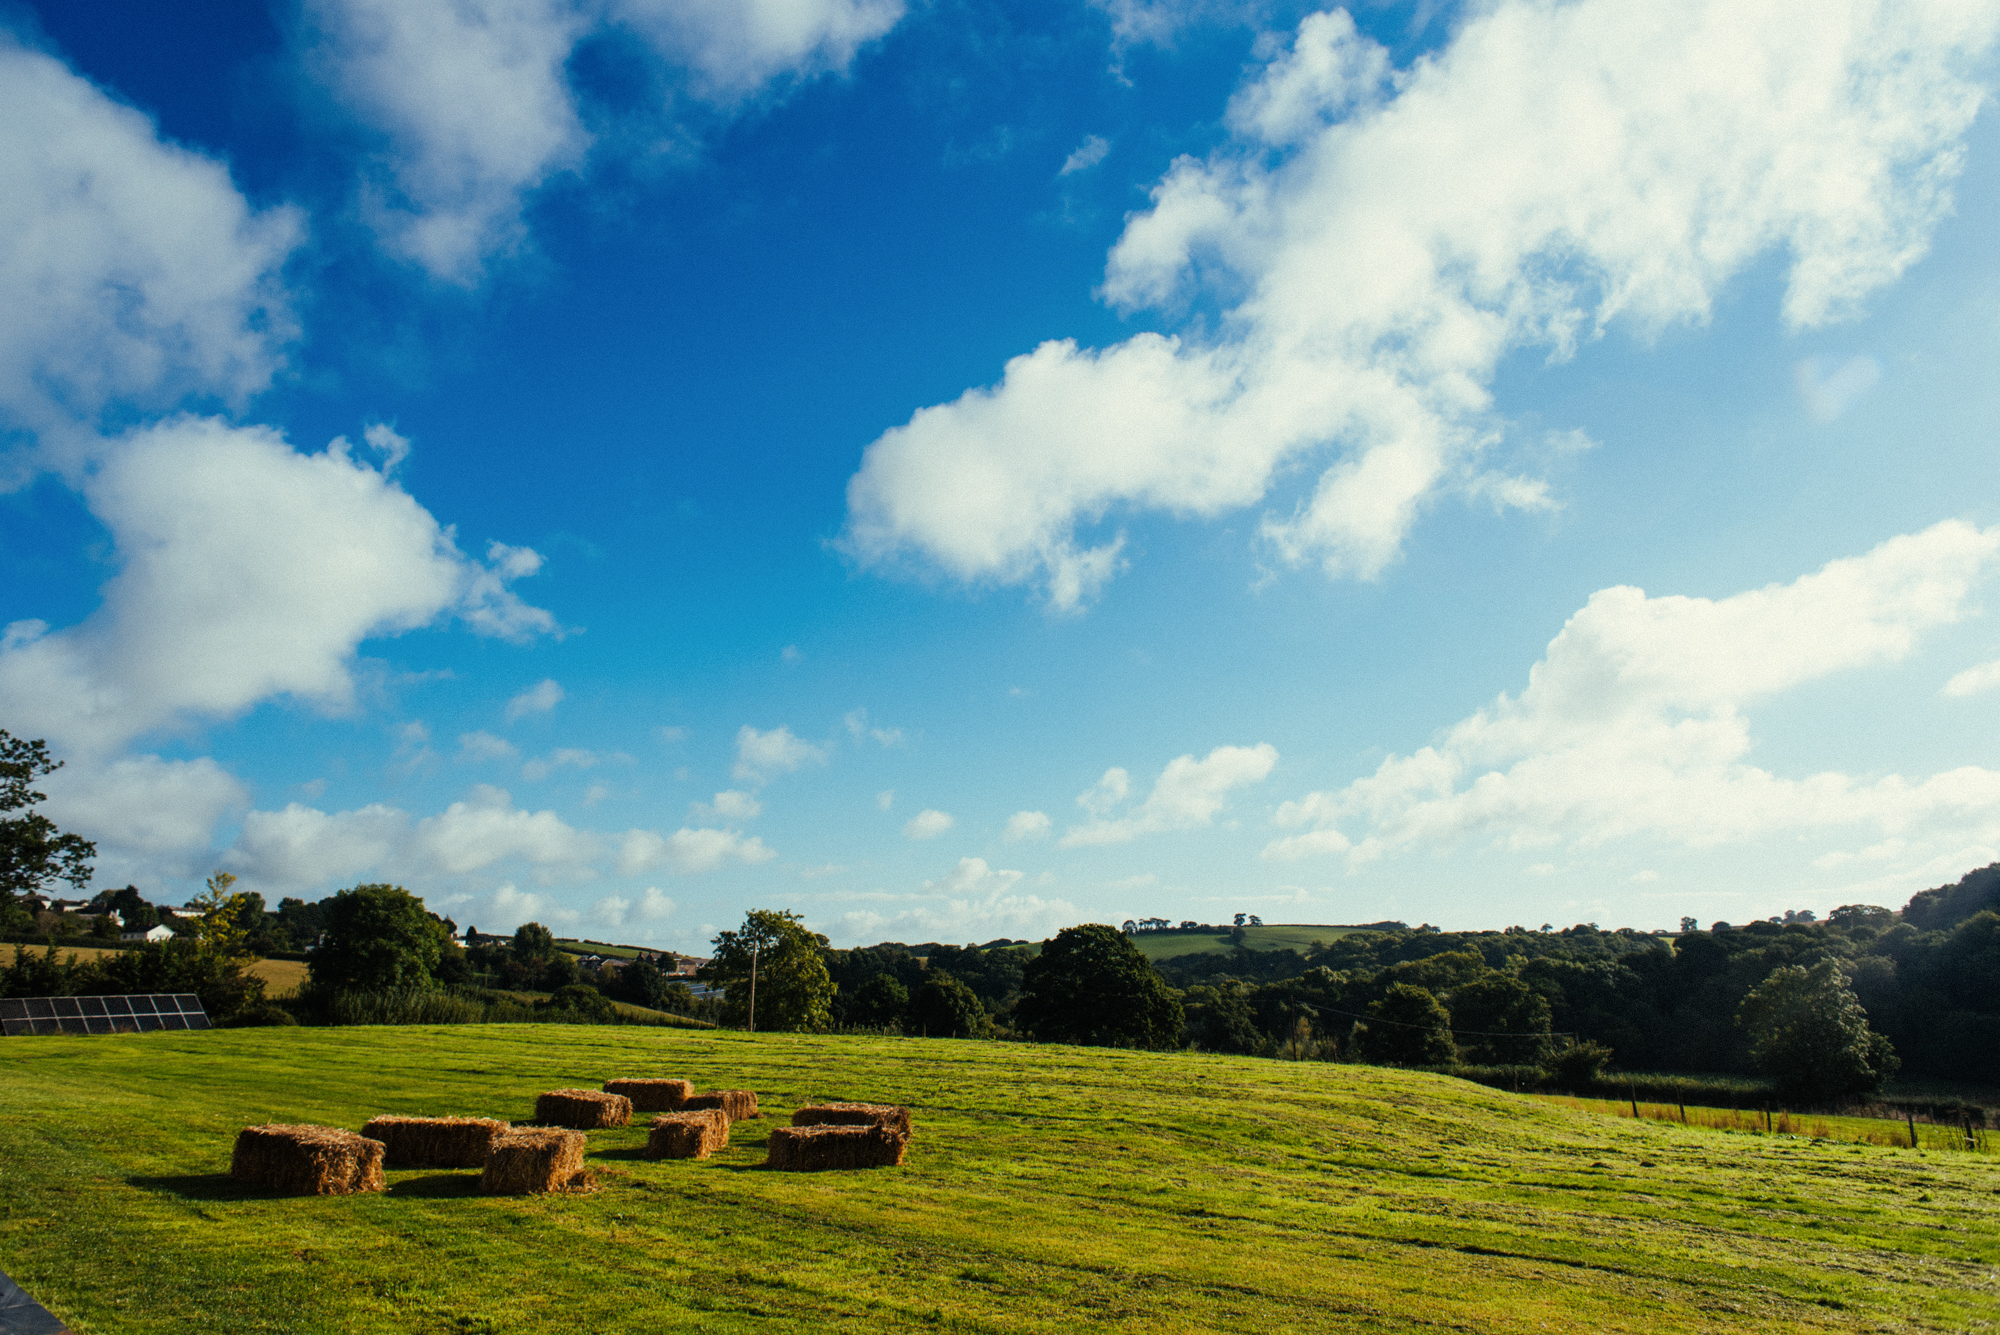 2-wedding-landscape-hay-bales